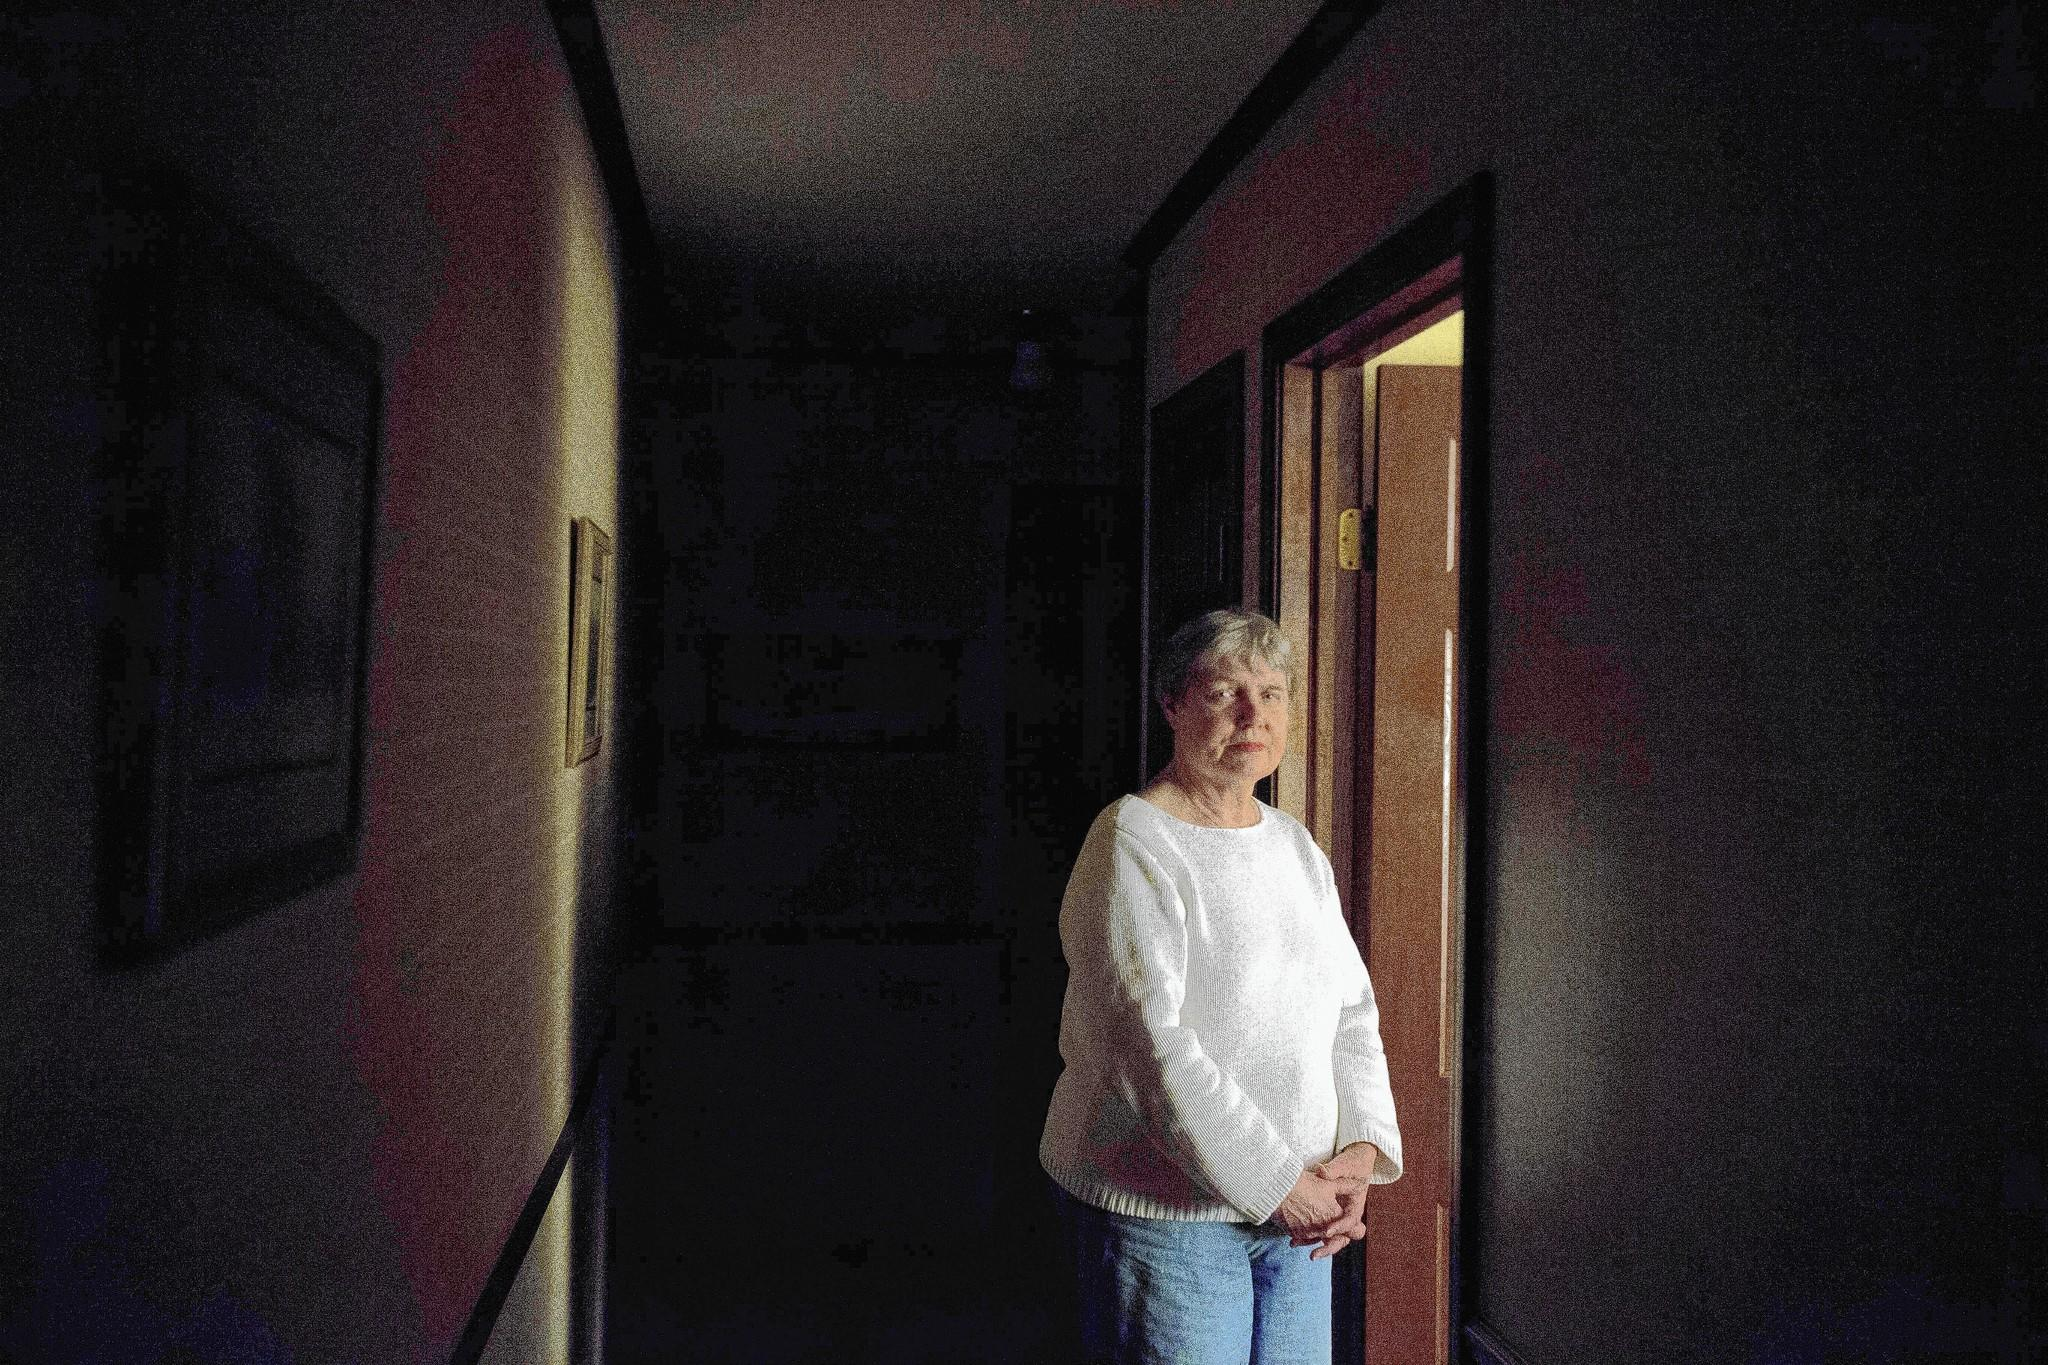 ComEd customer Judy Valentine keeps her Winfield home dark to save money, and she's concerned about rates that are set to rise.